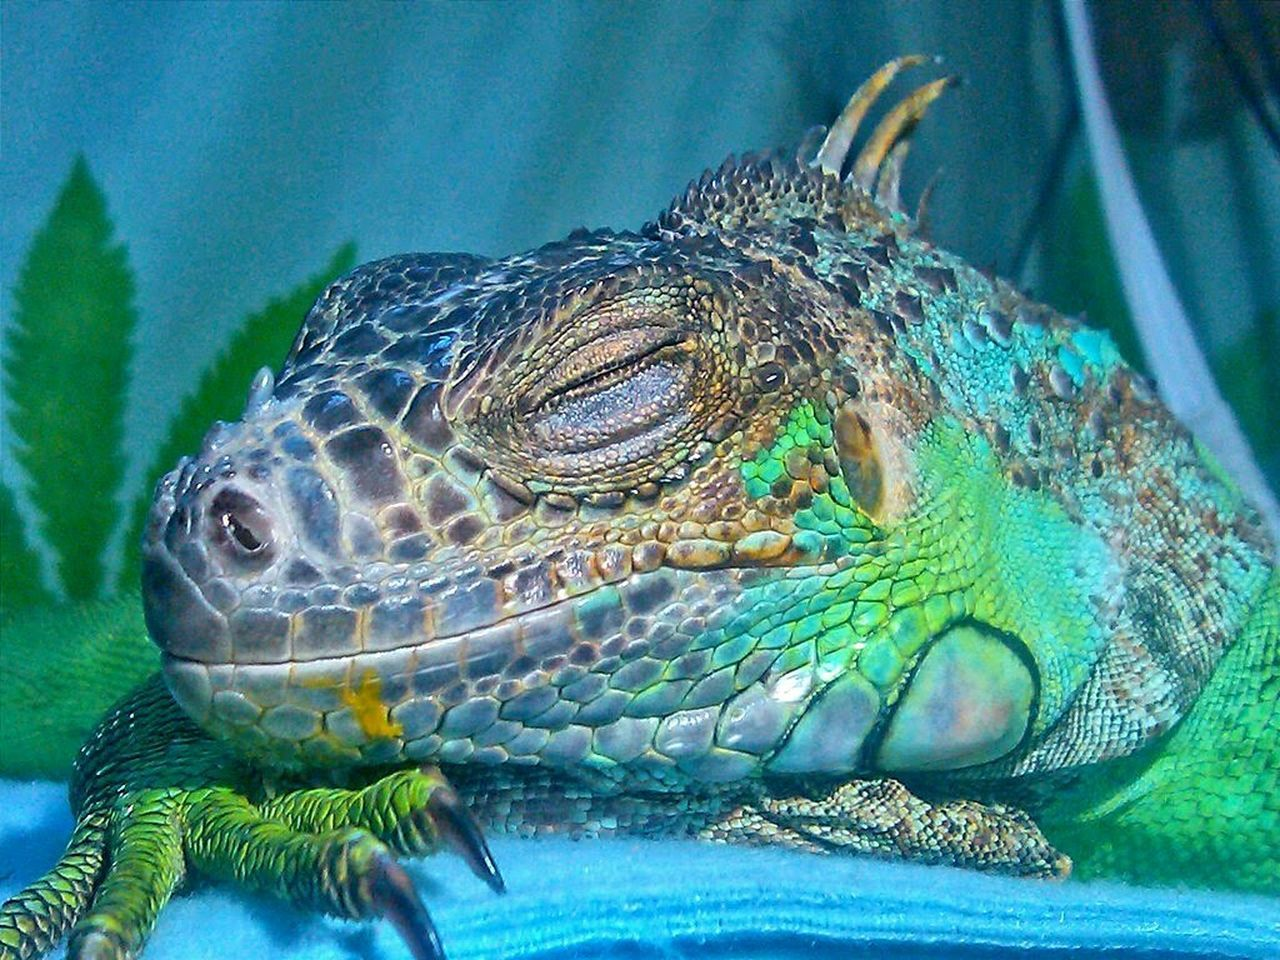 My Sweet little Mango Face.. She passed away last year, this has always been one of my favorite photos of her. RIP, Equanimity 💔 Greeniguana Iguana Greenlizard Iggies Mangolover Vegetarian Reptile Reptile World Reptilecollection Scales Scaley Sleeping Sleepingpets Iguanas D'aww Howsweet Check This Out Lizard